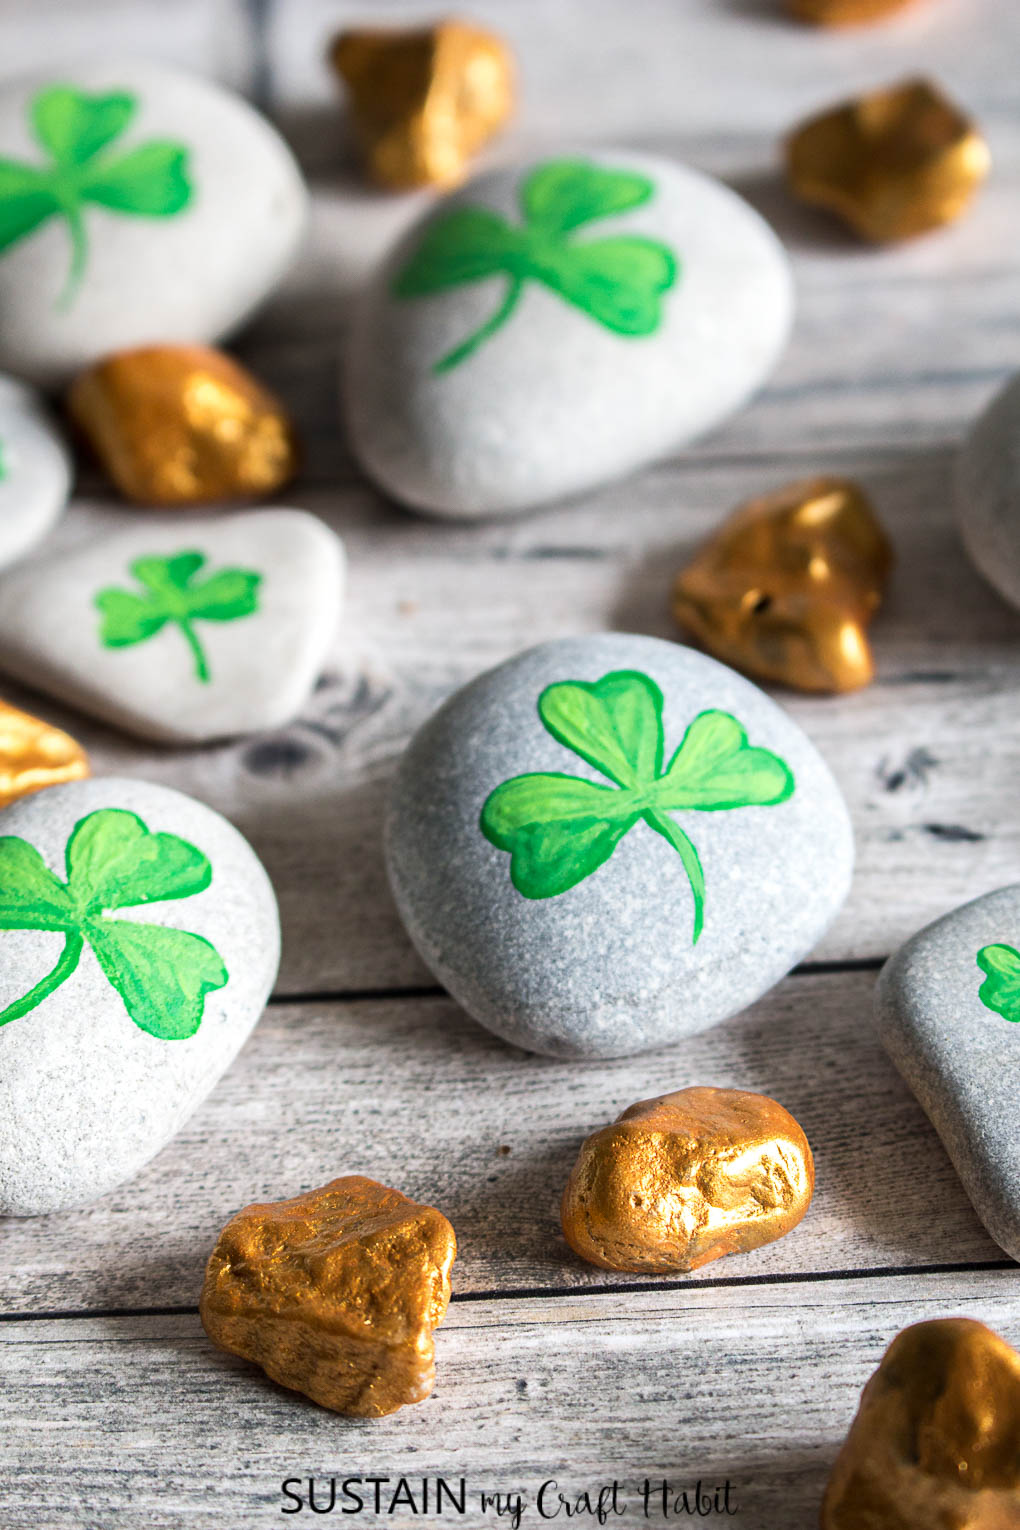 Completed shamrock and gold nugget painted rocks on a grey wood surface as an example of St Patrick's Day crafts ideas.